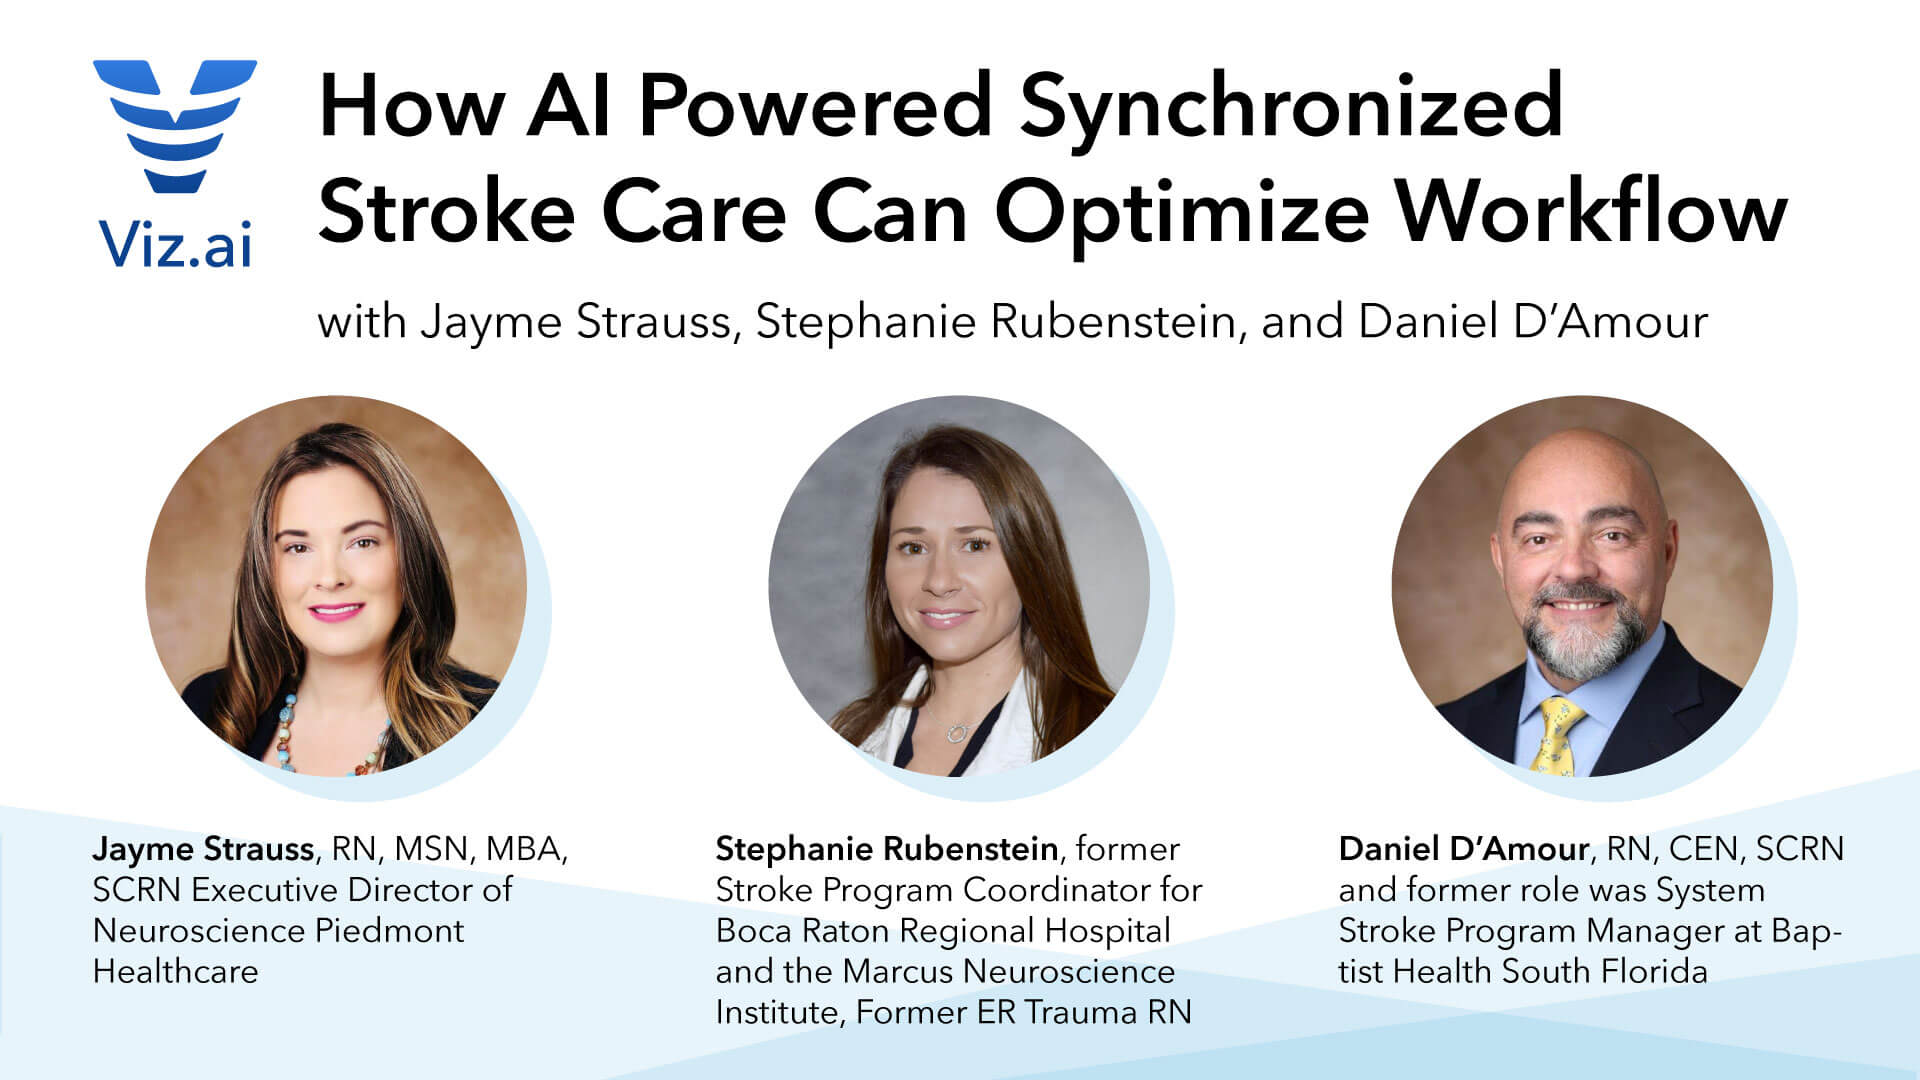 How AI Powered Synchronized Stroke Care Can Optimize Workflow